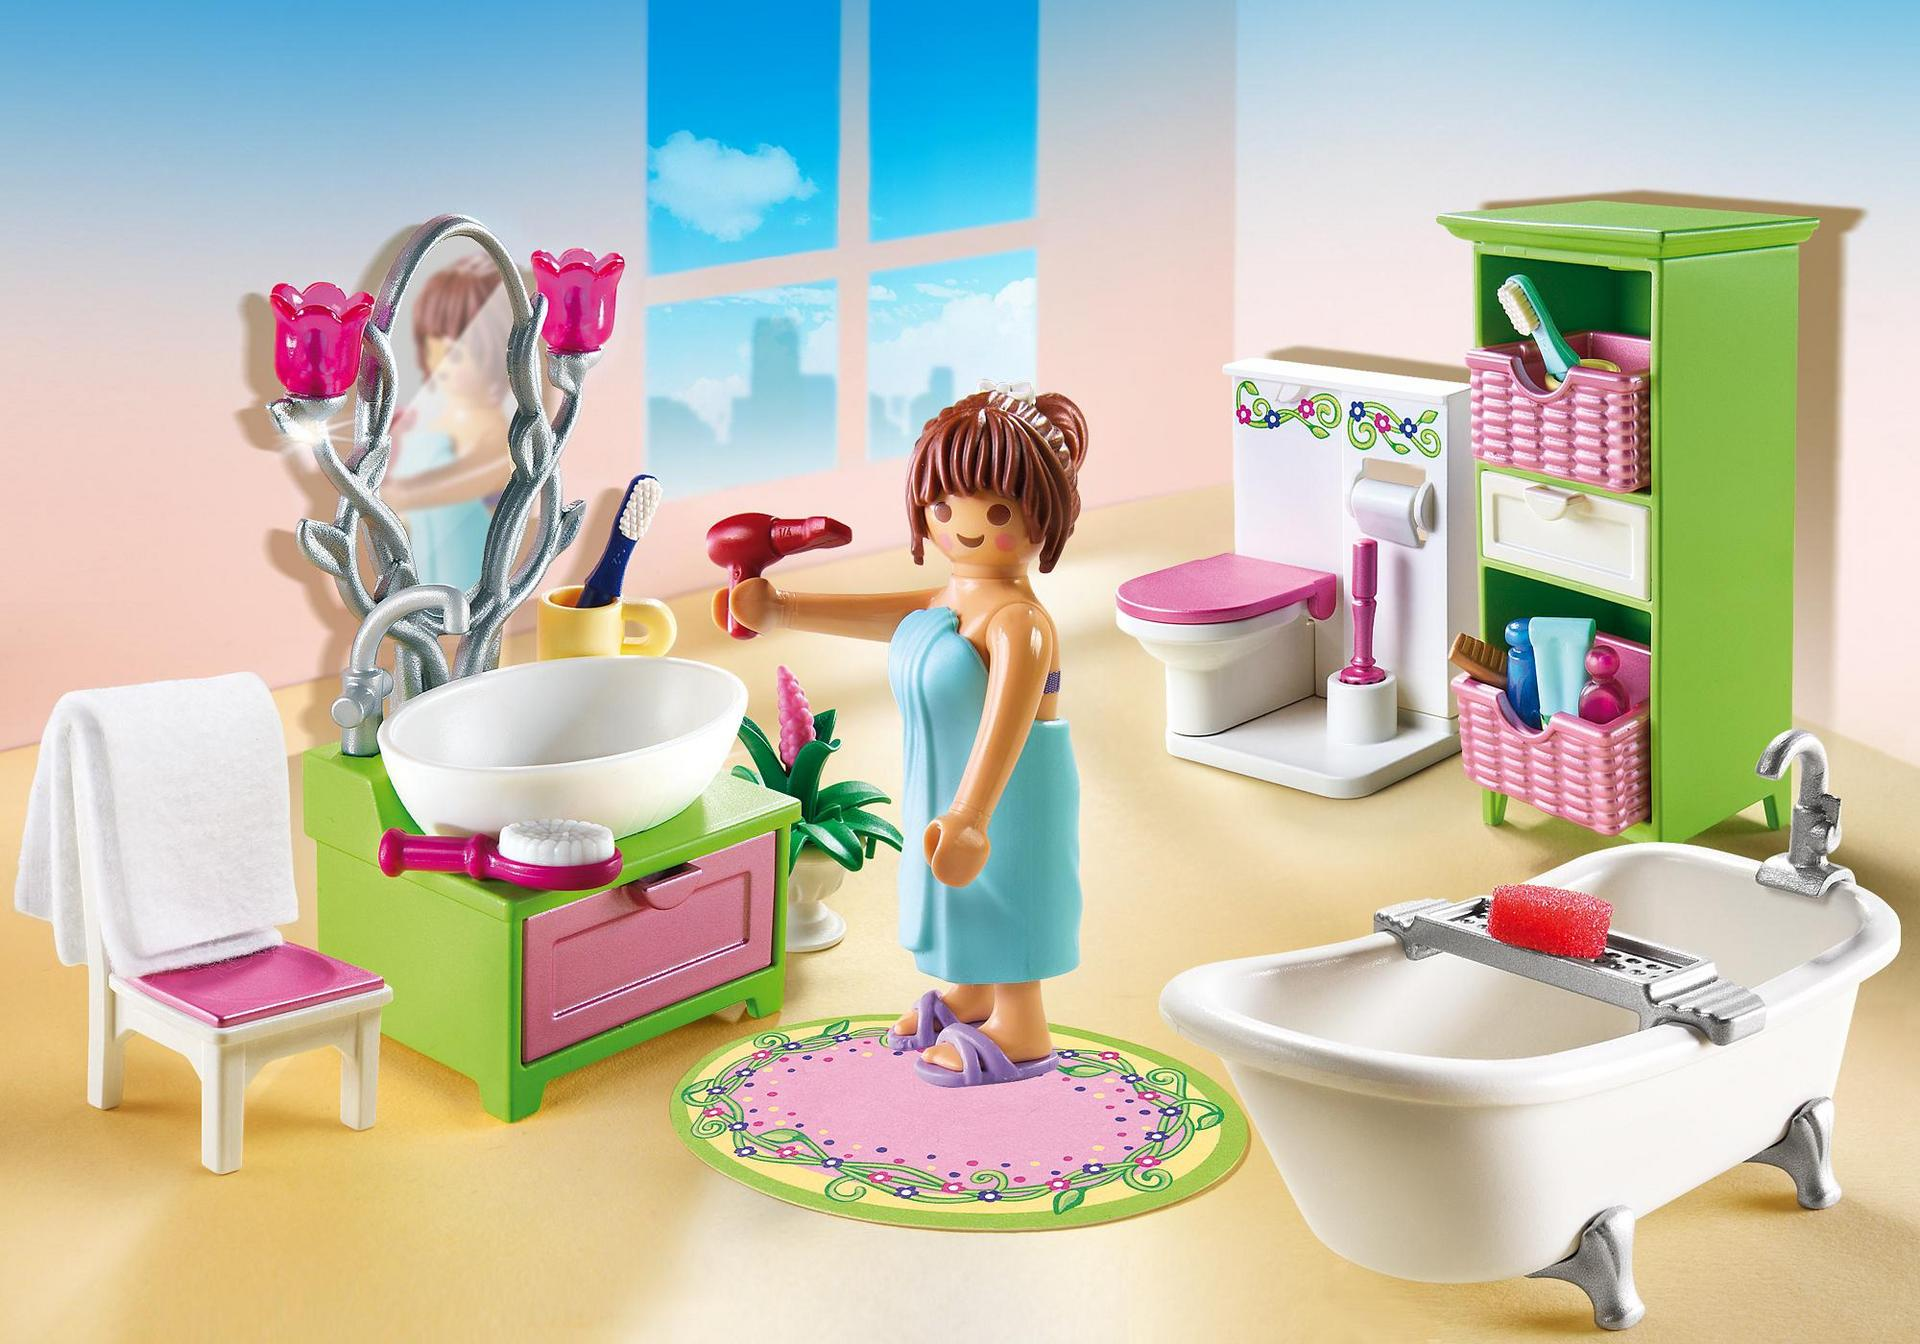 Playmobil City Life Furniture - Furniture Ideas